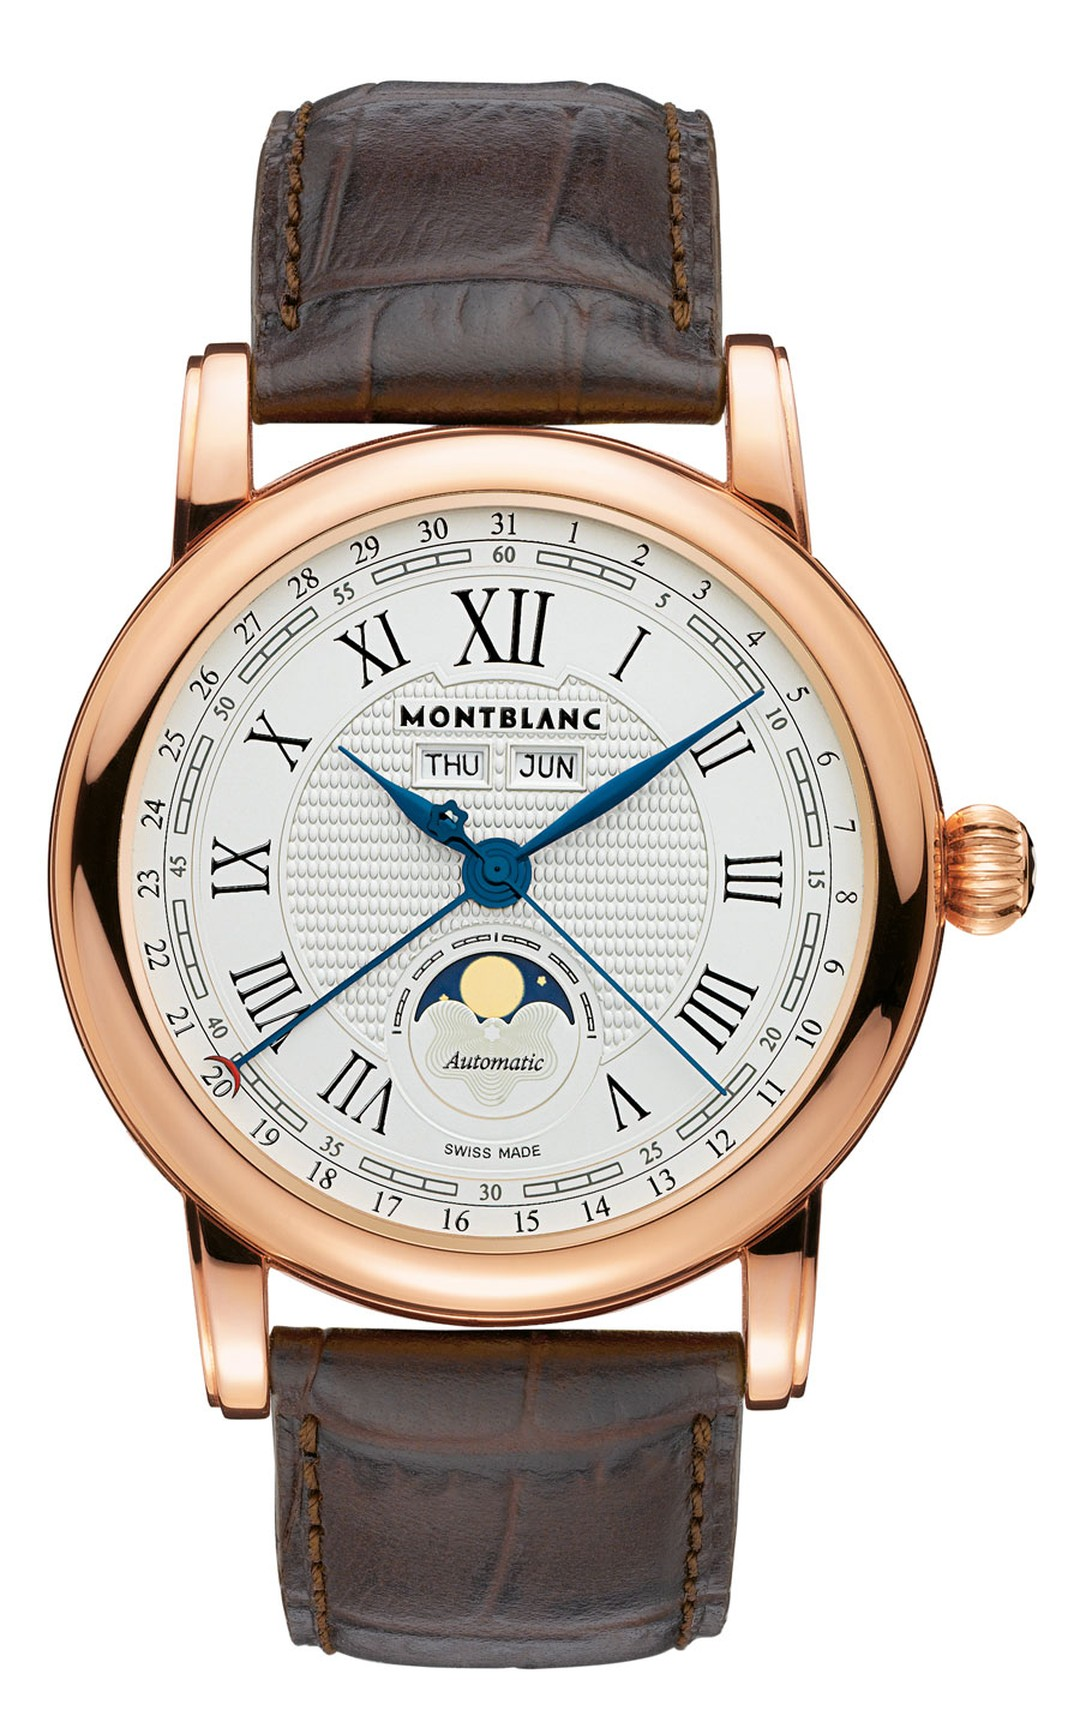 Montblanc-Star-Quantieme-Complet-front.jpg